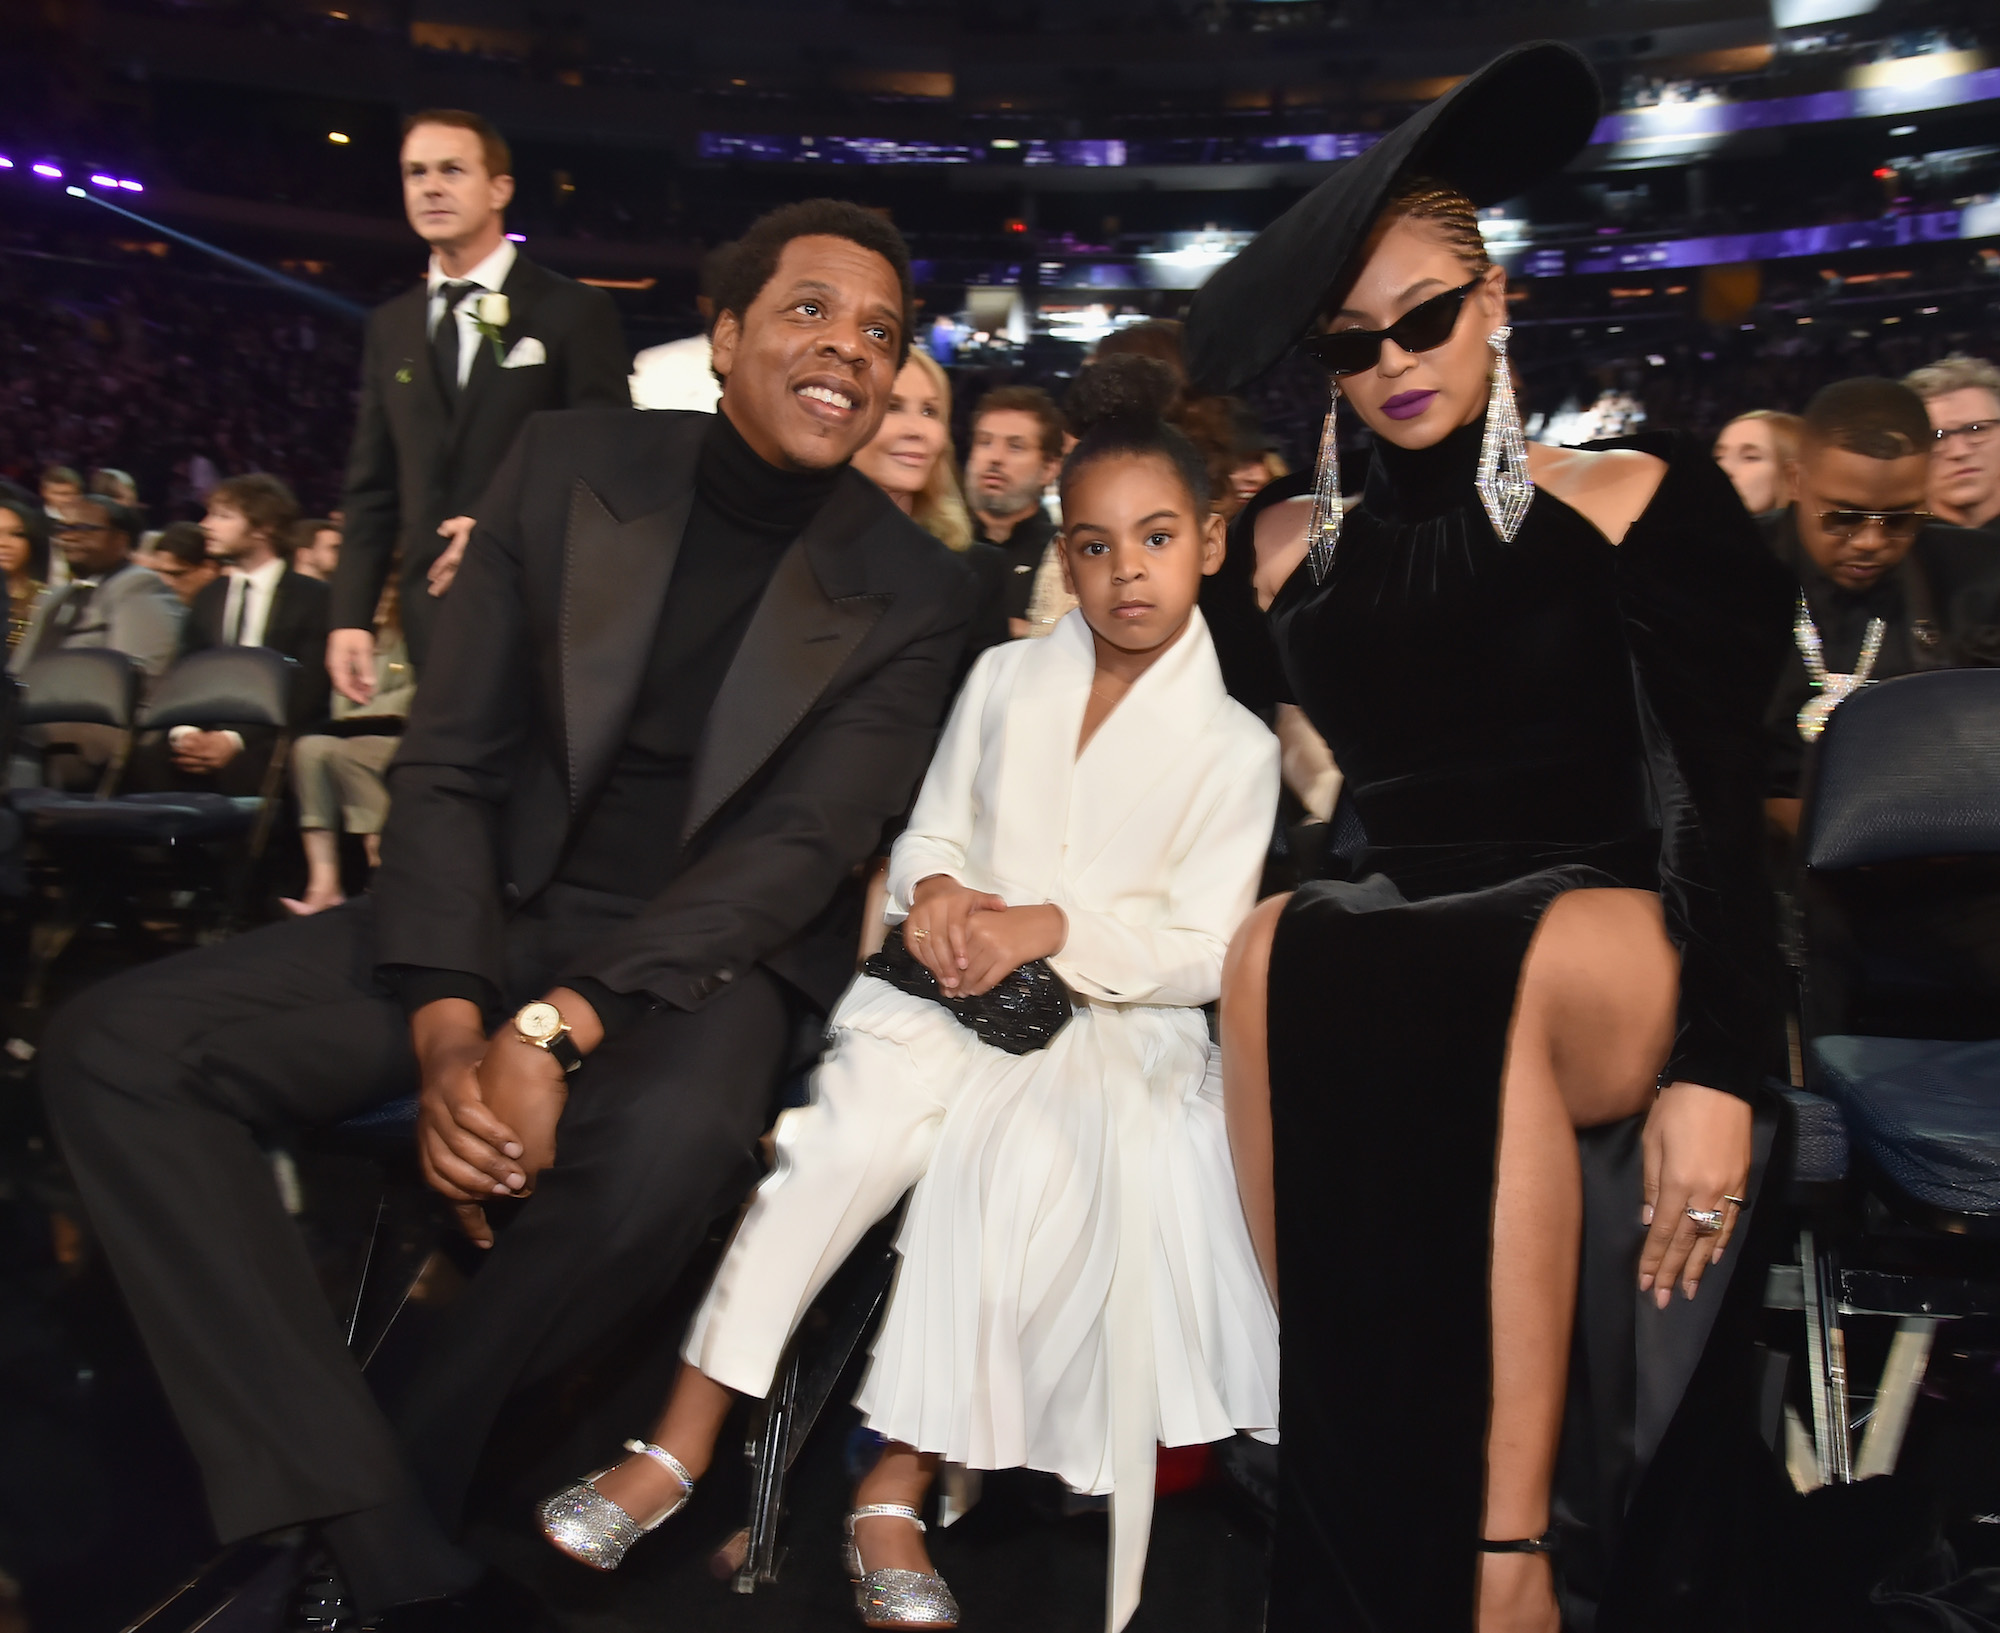 Beyonce, Jay-Z, and Blue Ivy Carter lead